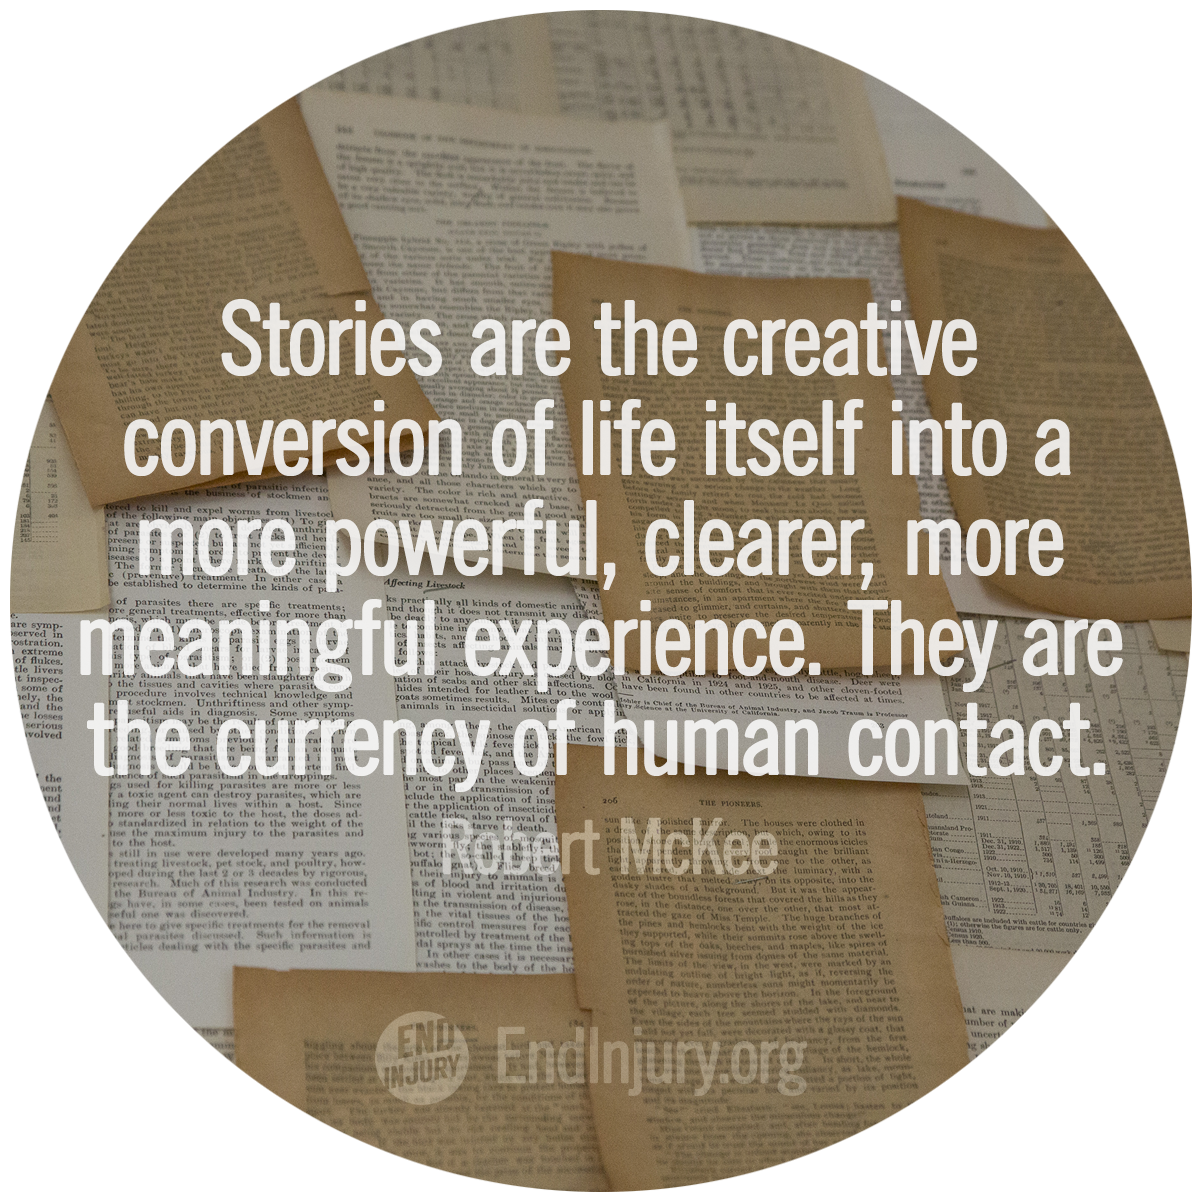 stories-mckee-quote-photo.png